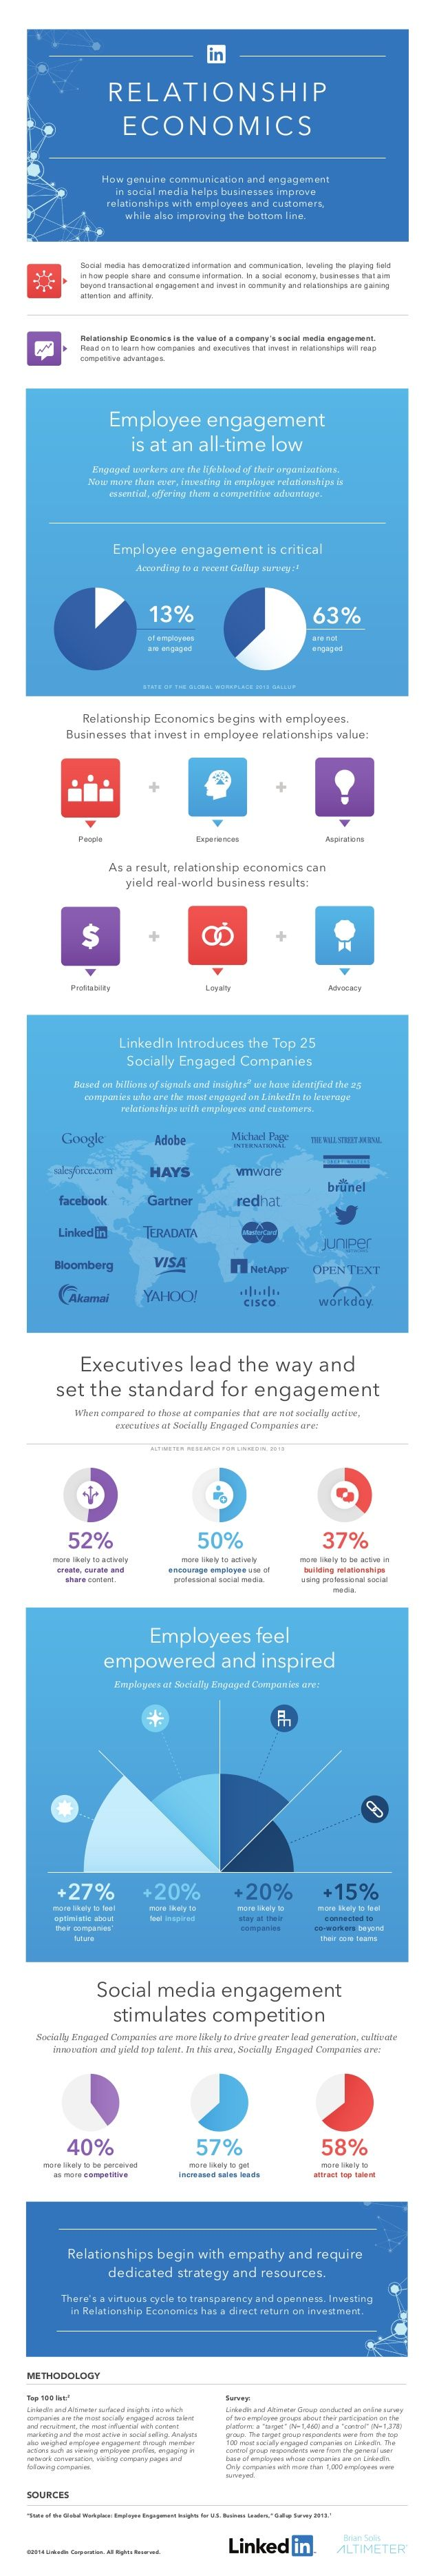 Top 25 Most Socially Engaged Companies